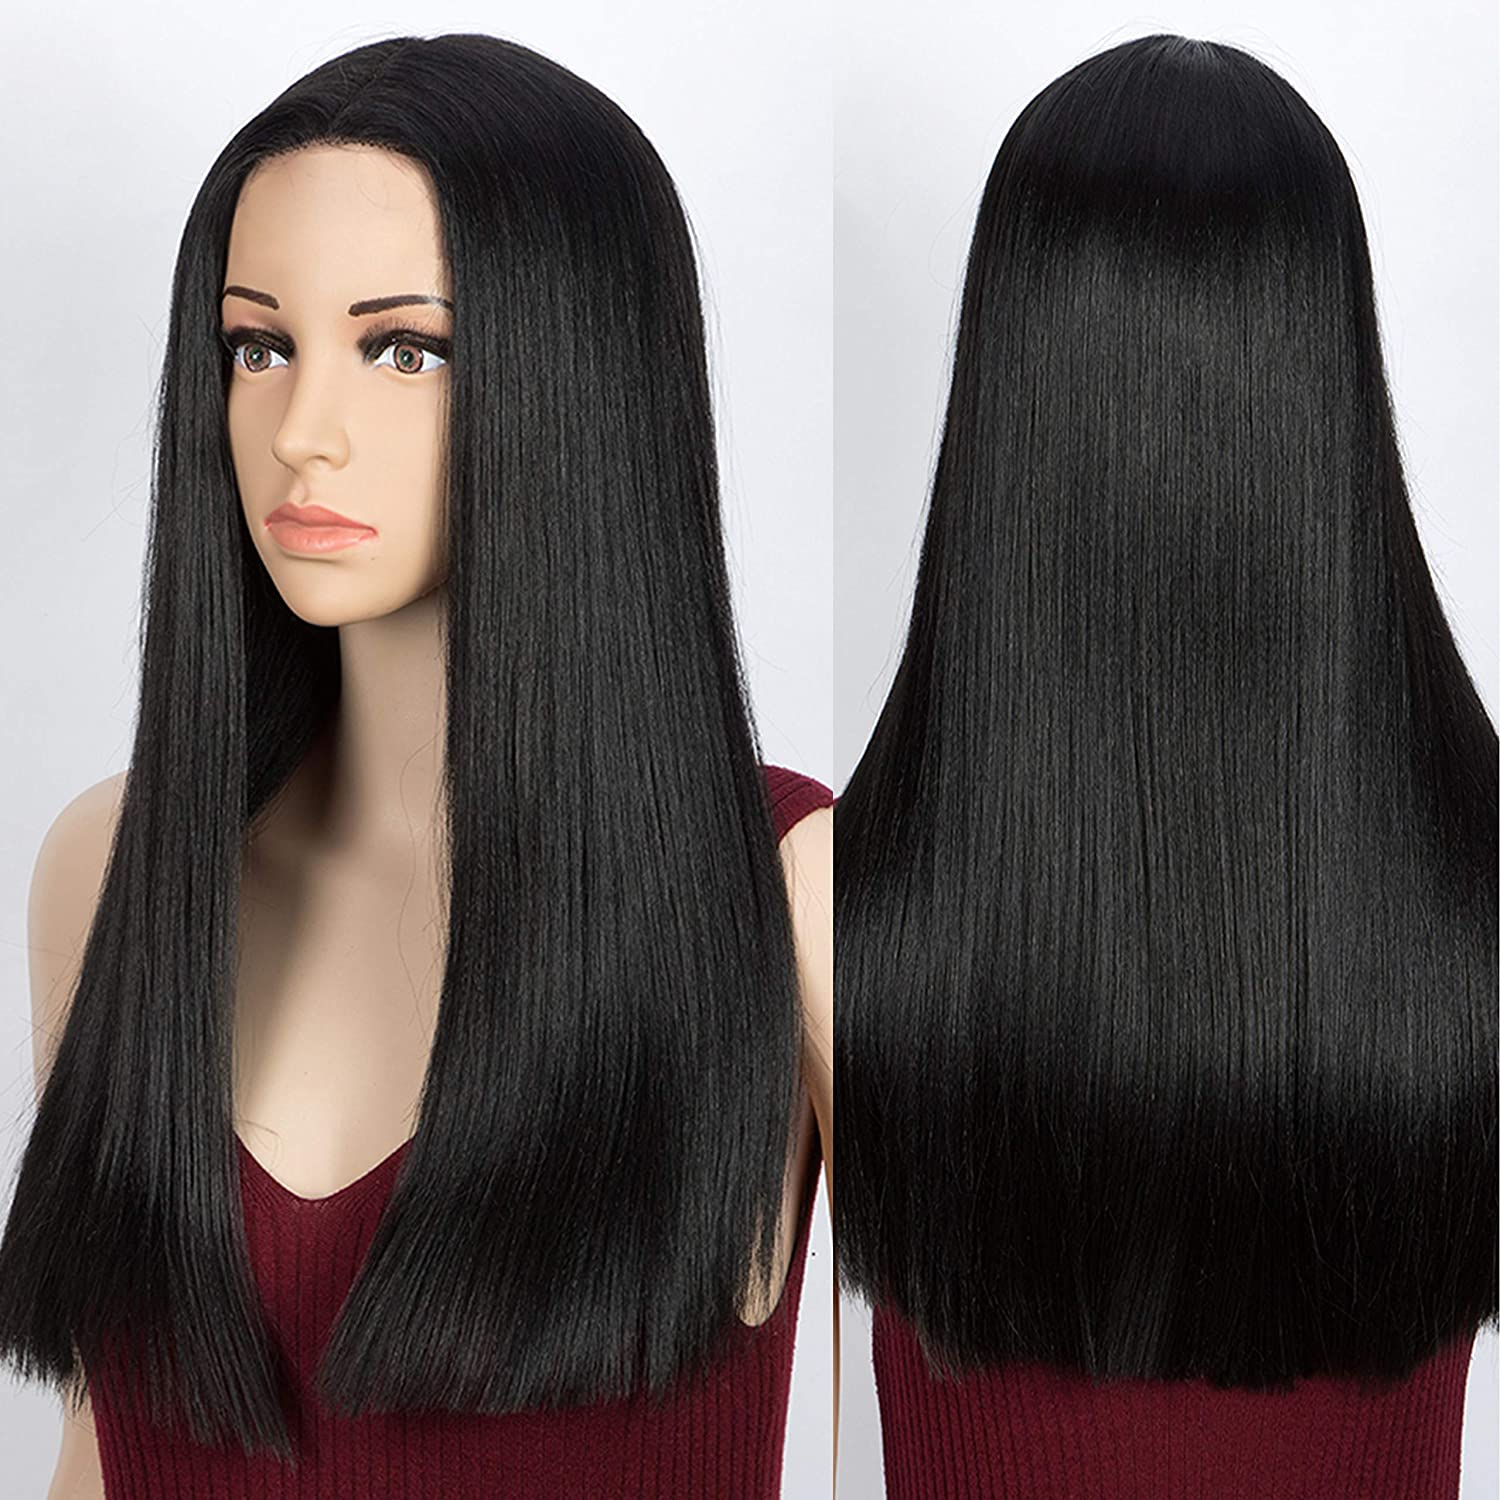 Akkya 20 Inch Long Black Wigs for Straight OFFicial depot Women Middl Synthetic